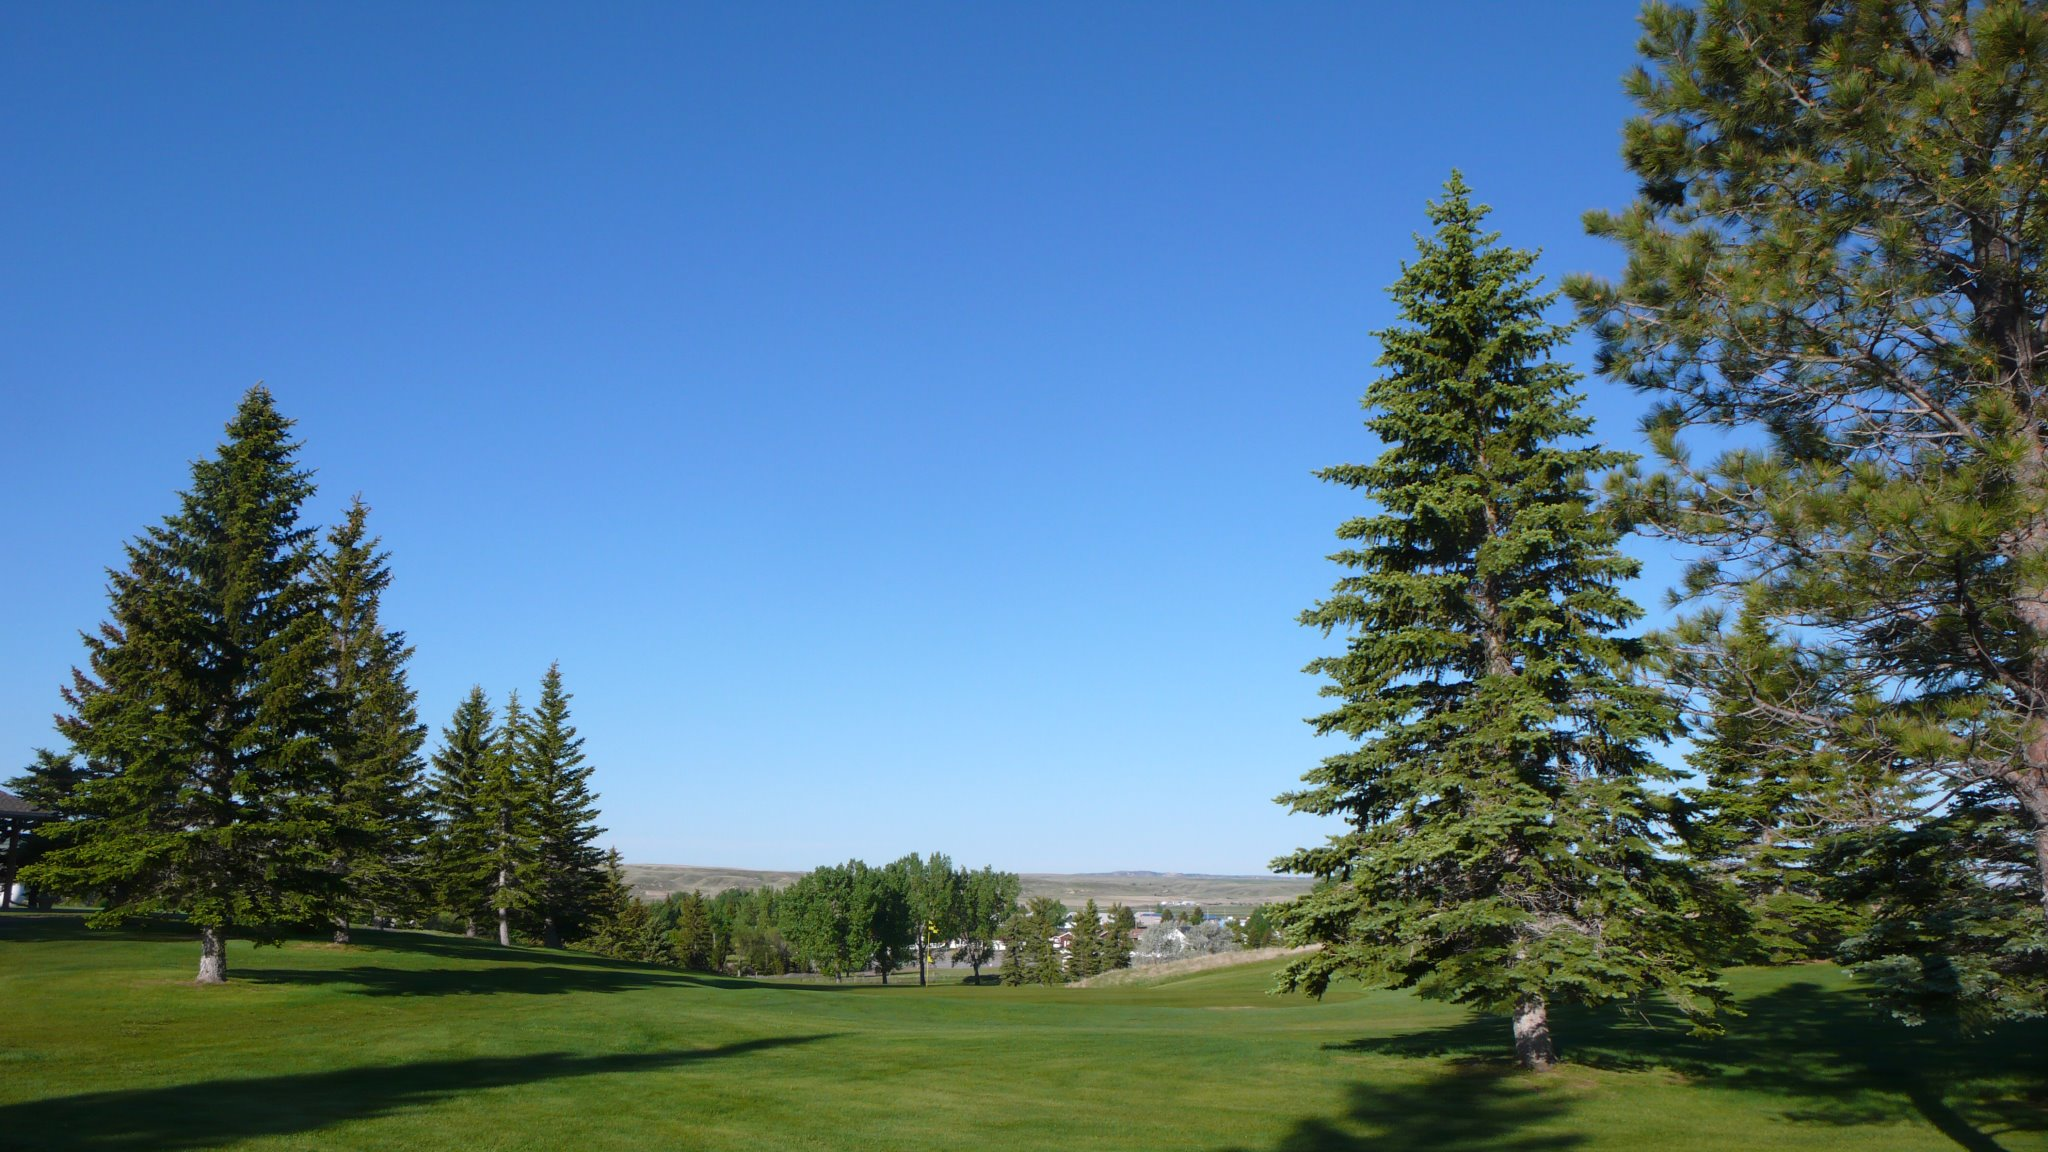 Overview of golf course named Plentywood Golf Club